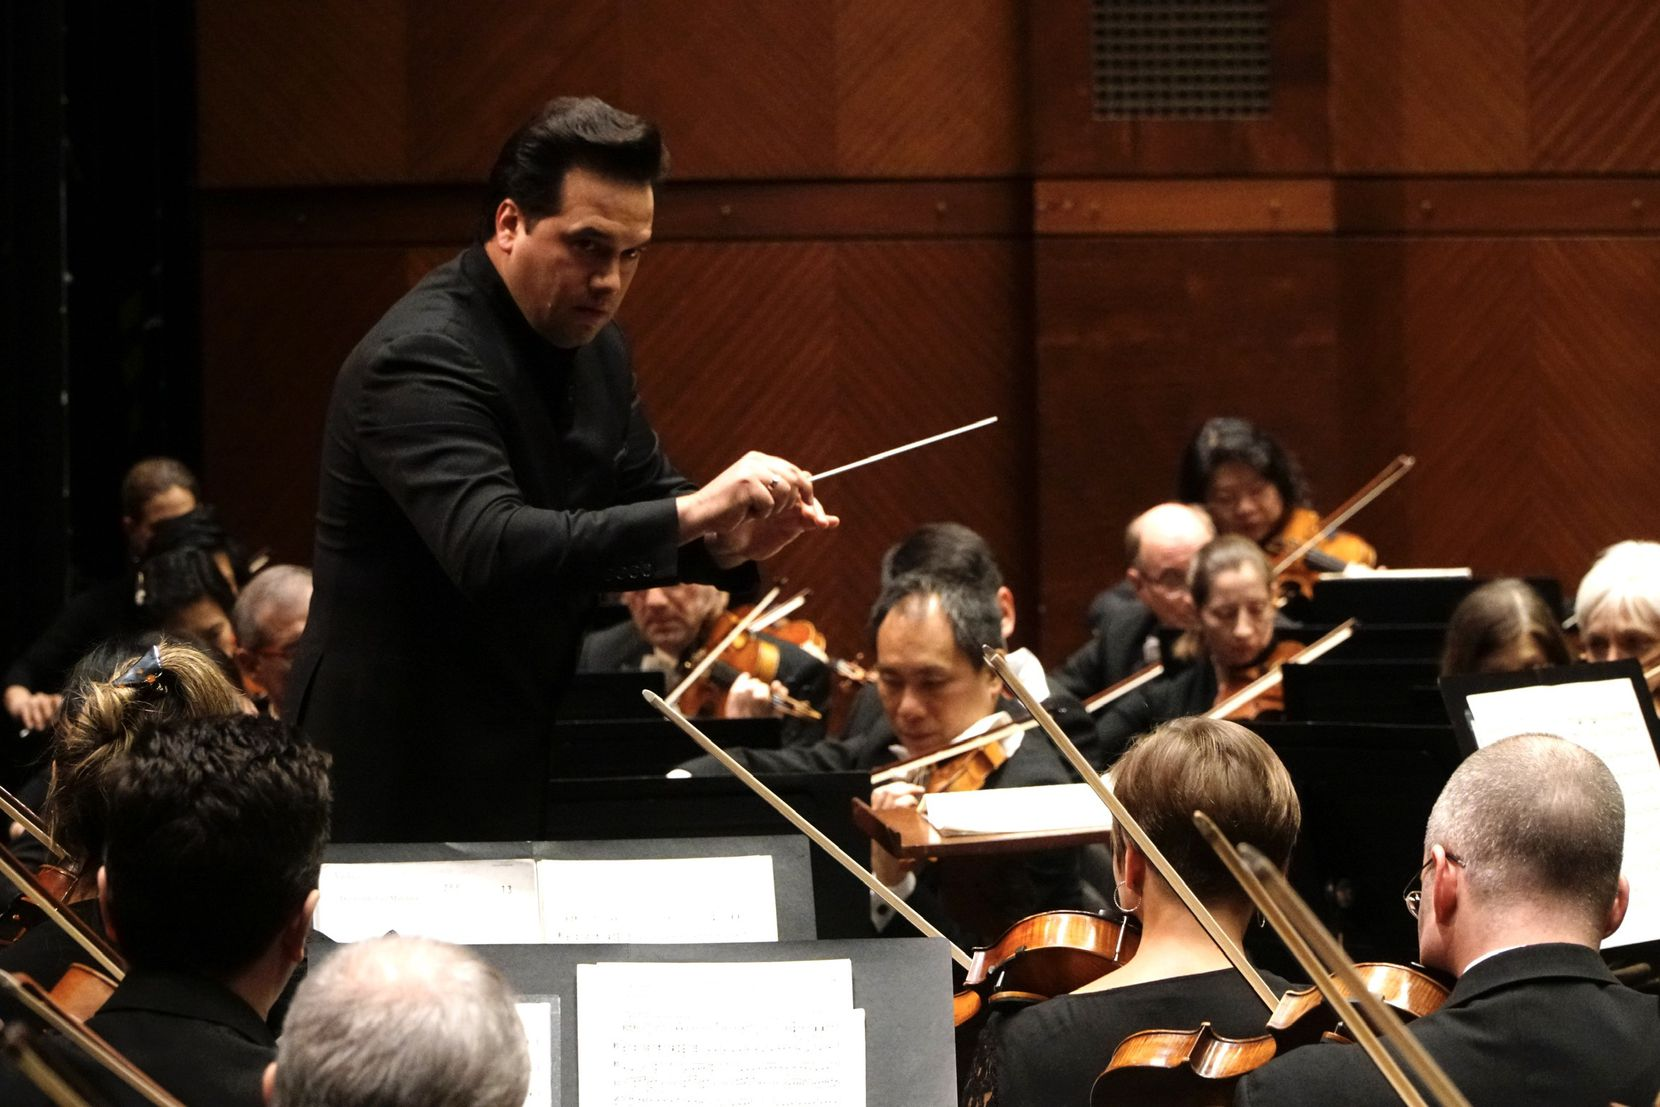 Guest conductor Robert Trevino leads the Fort Worth Symphony Orchestra at Bass Performance Hall in Fort Worth on Feb. 28, 2020.